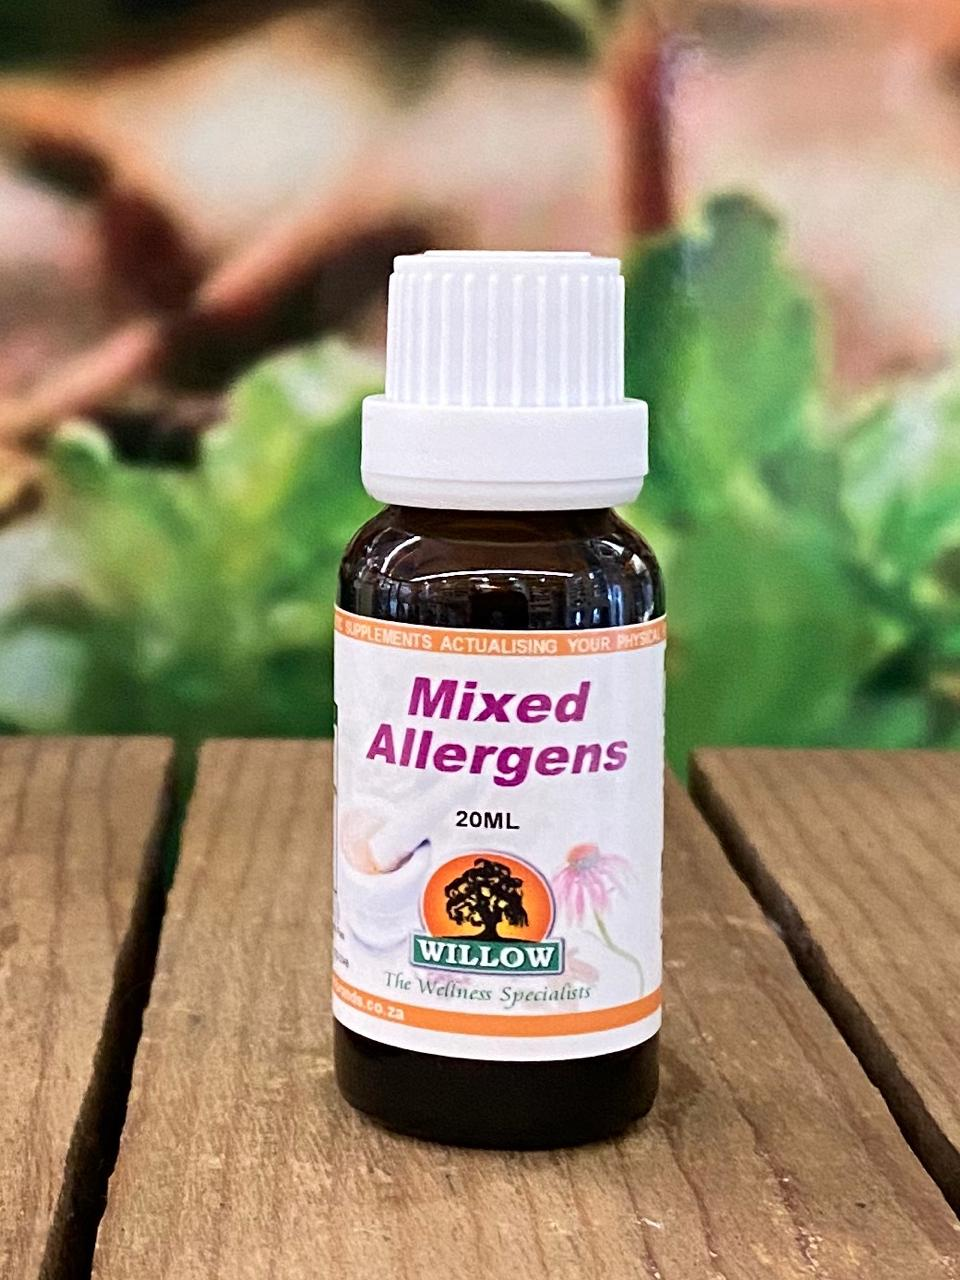 Mixed Allergens drops 20ml